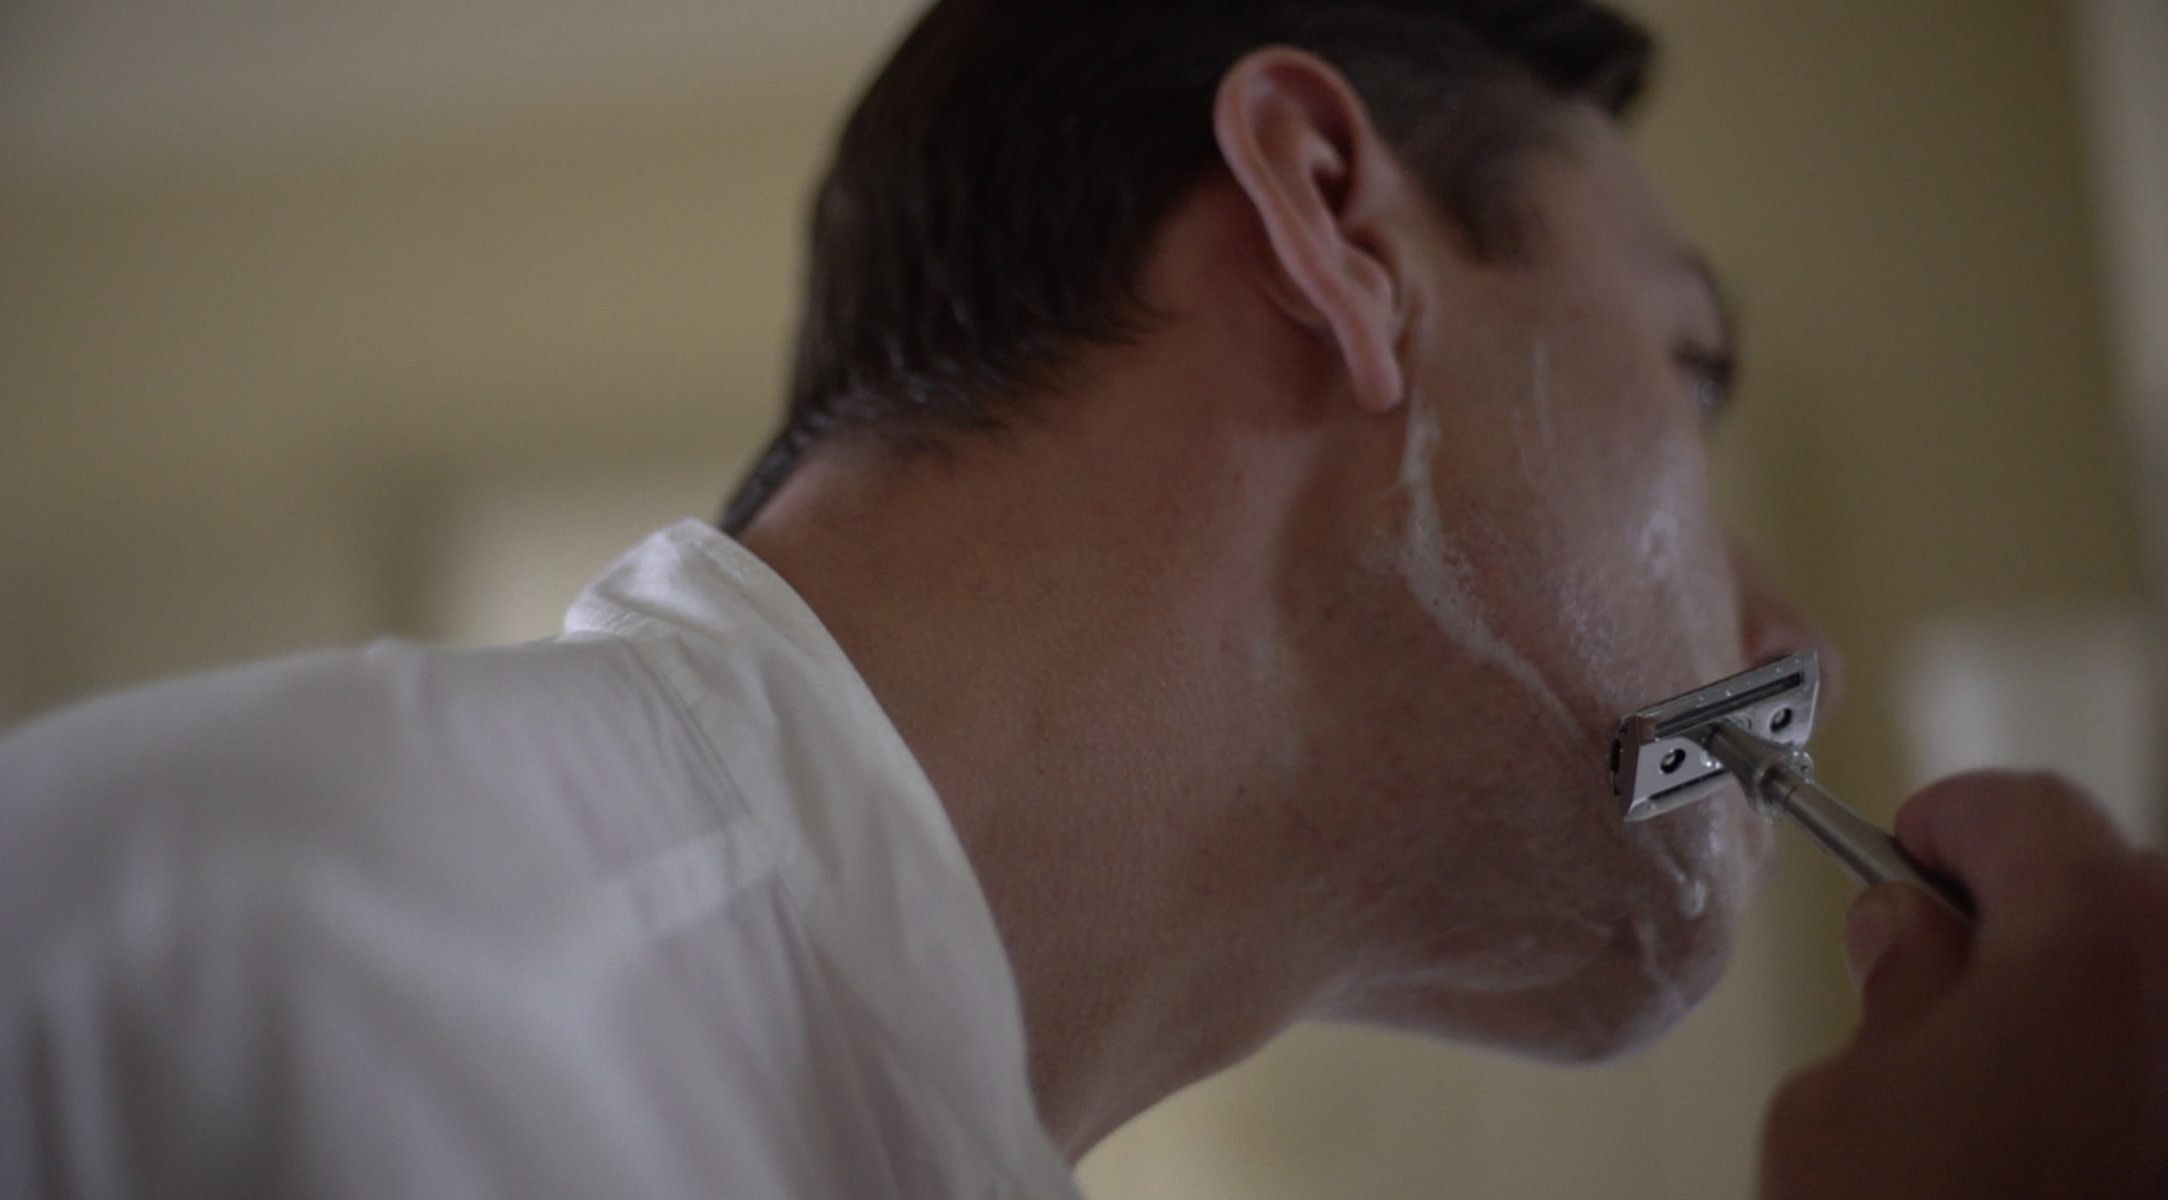 A safety razor shave is a ritual, not a chore